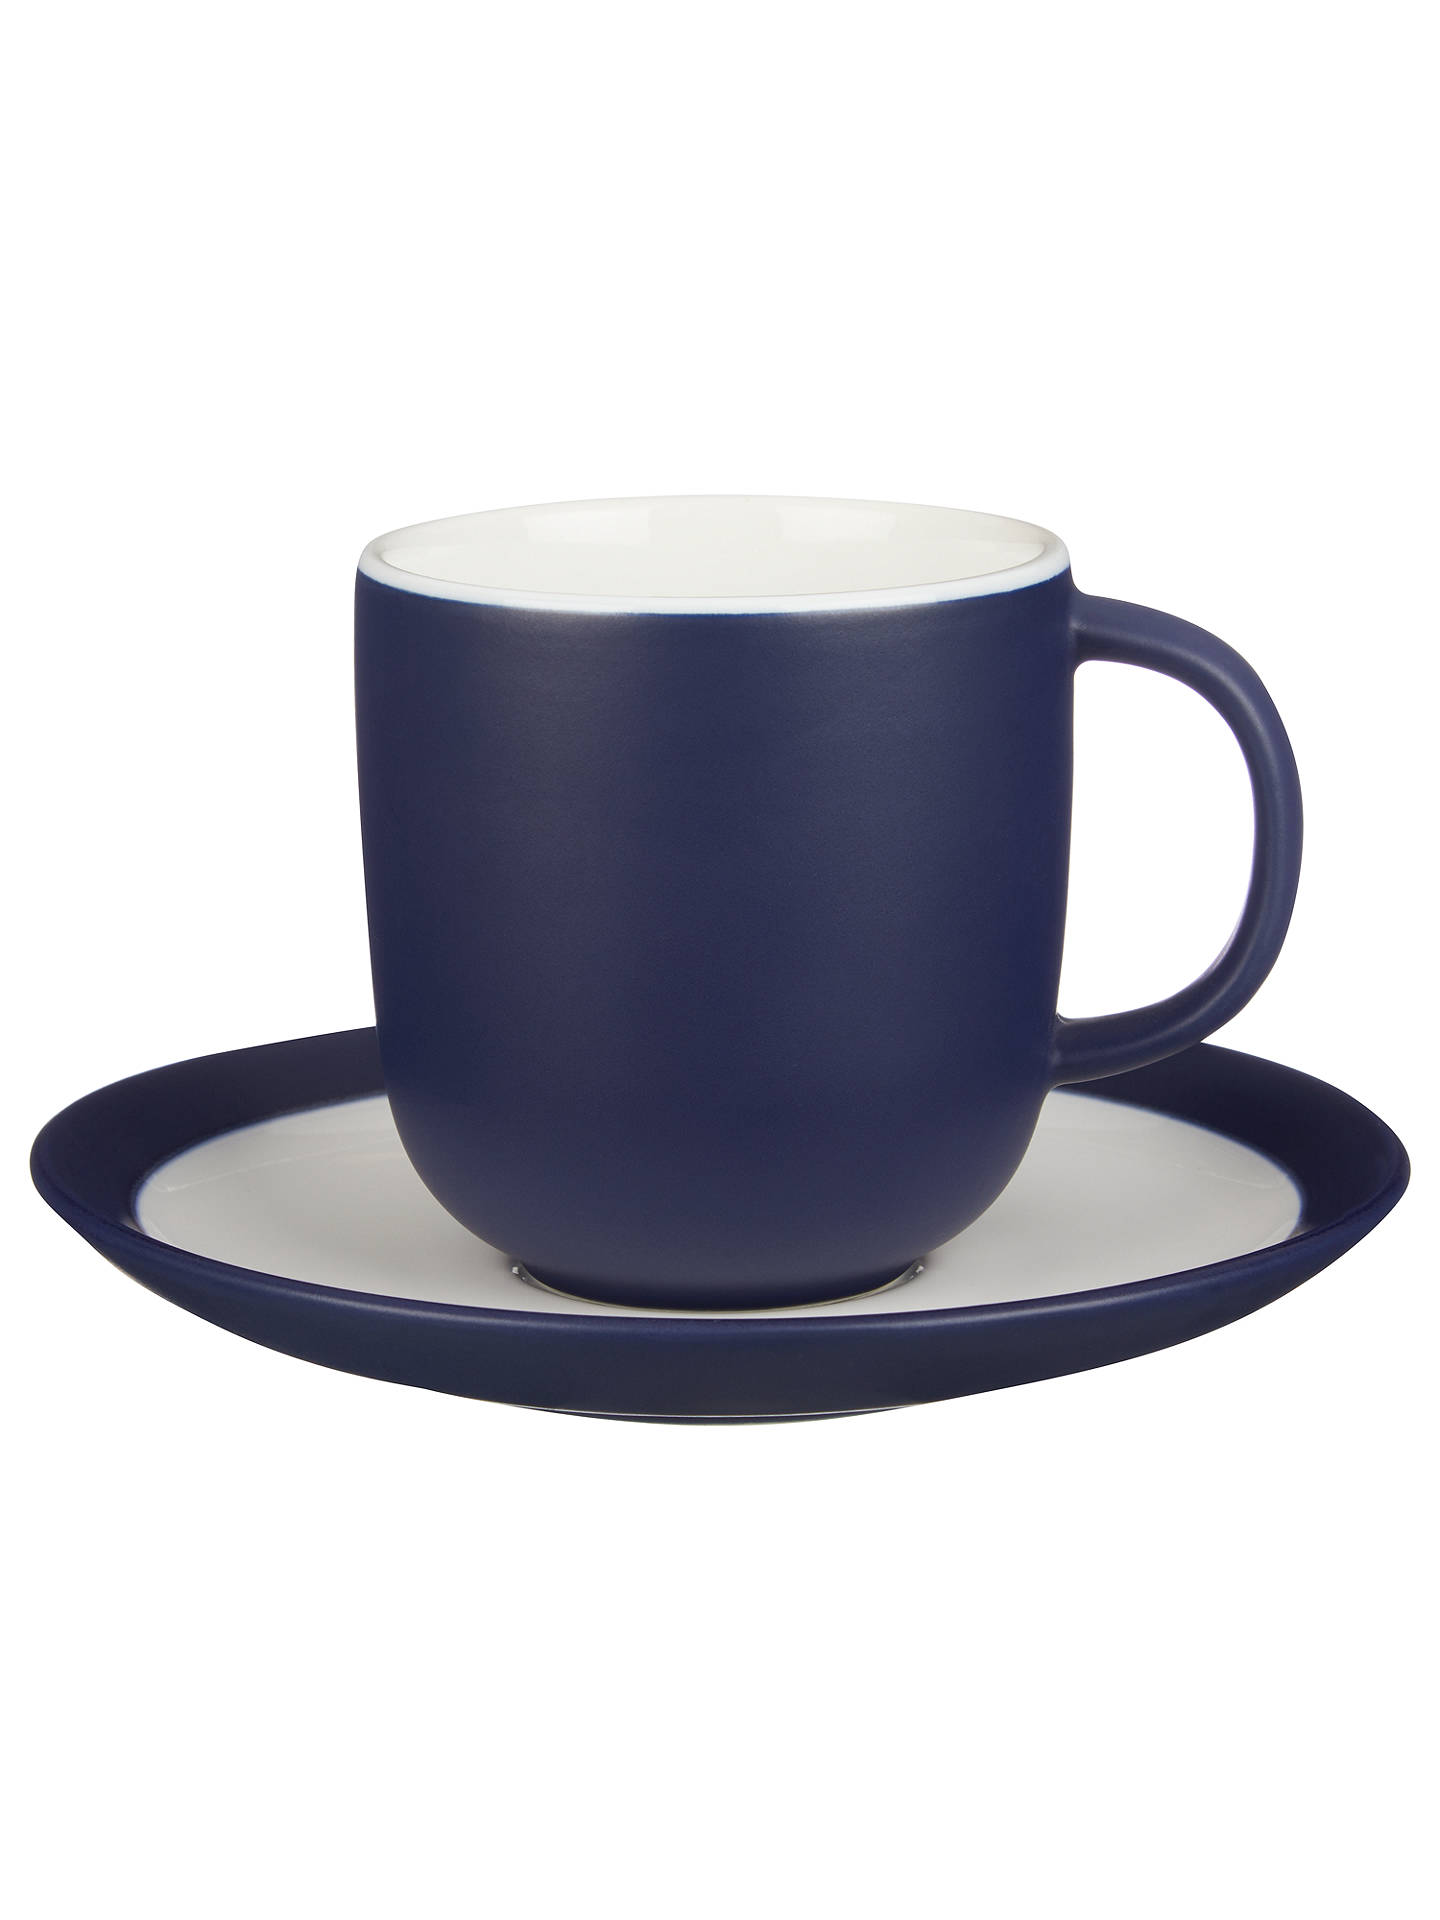 Buy John Lewis & Partners Puritan Cup and Saucer, 240ml, Midnight Blue Online at johnlewis.com